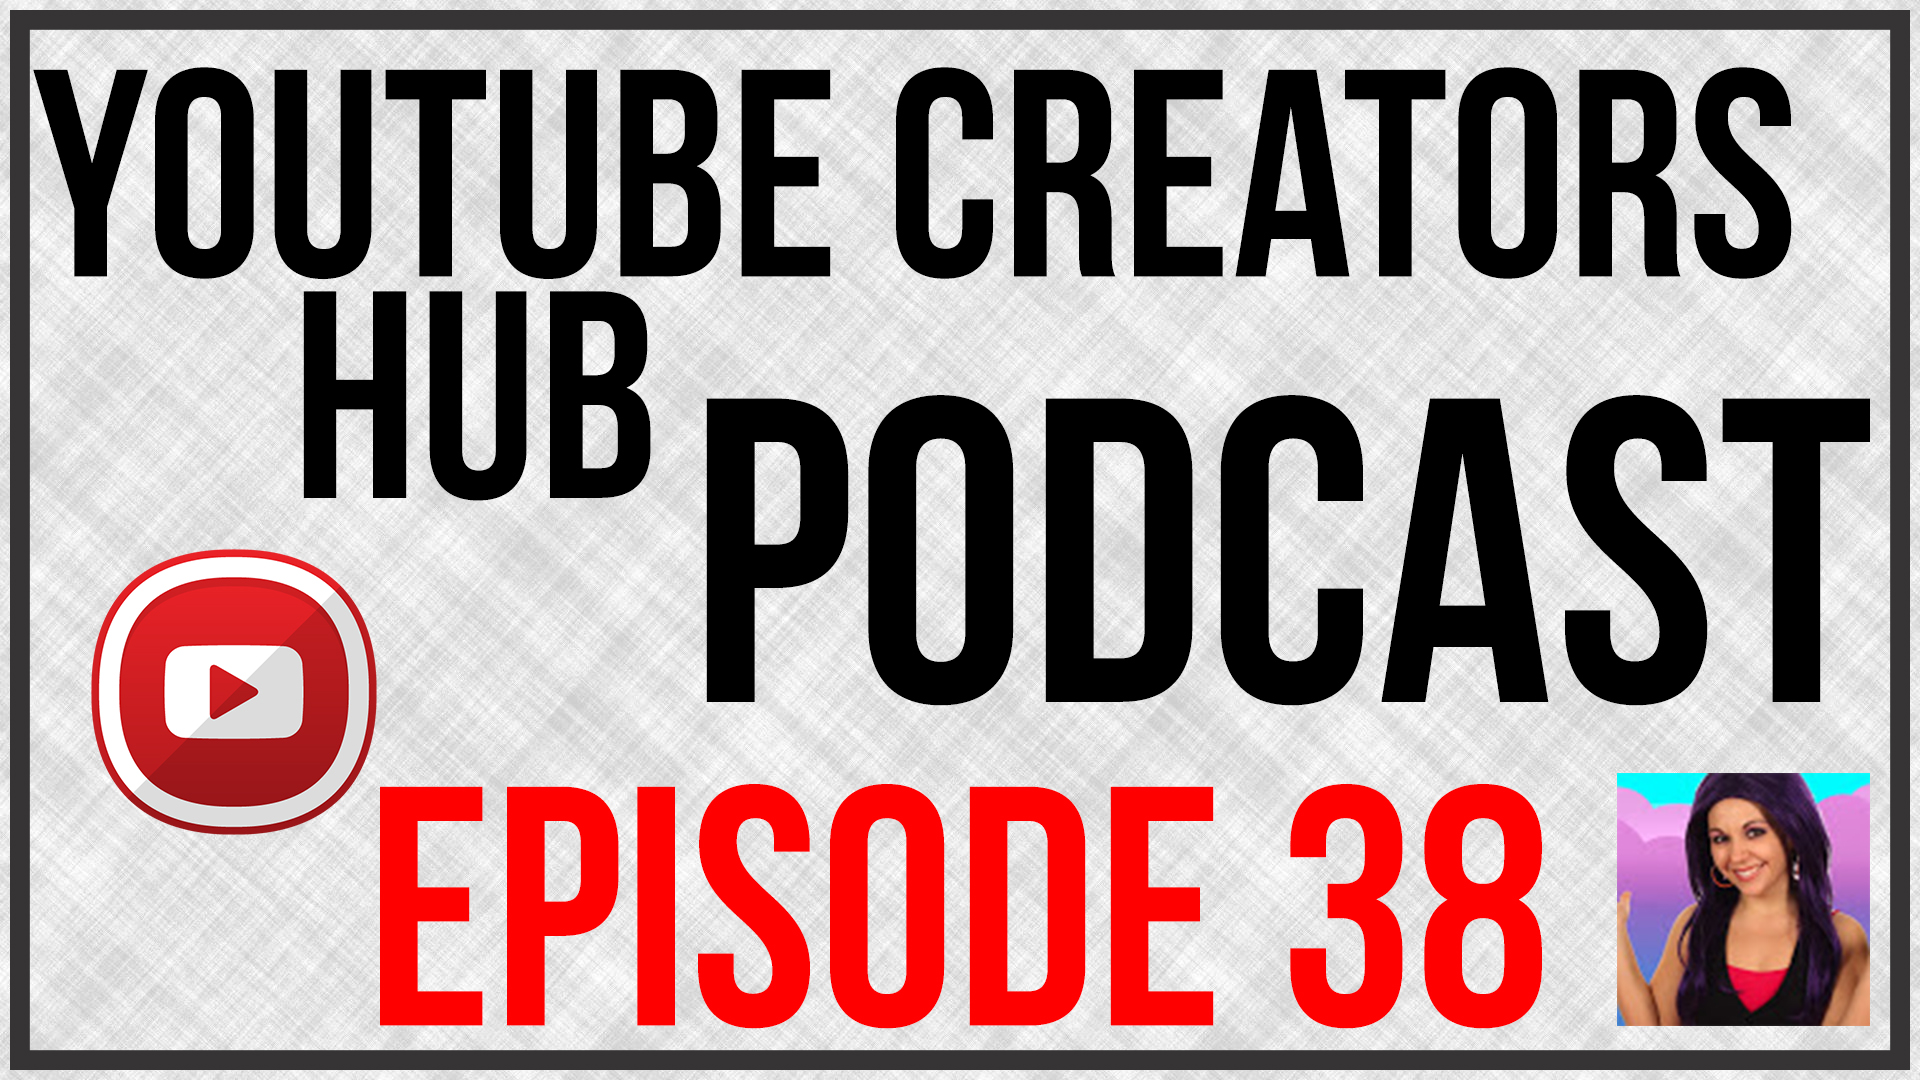 youtube creators hub podcast episode 38